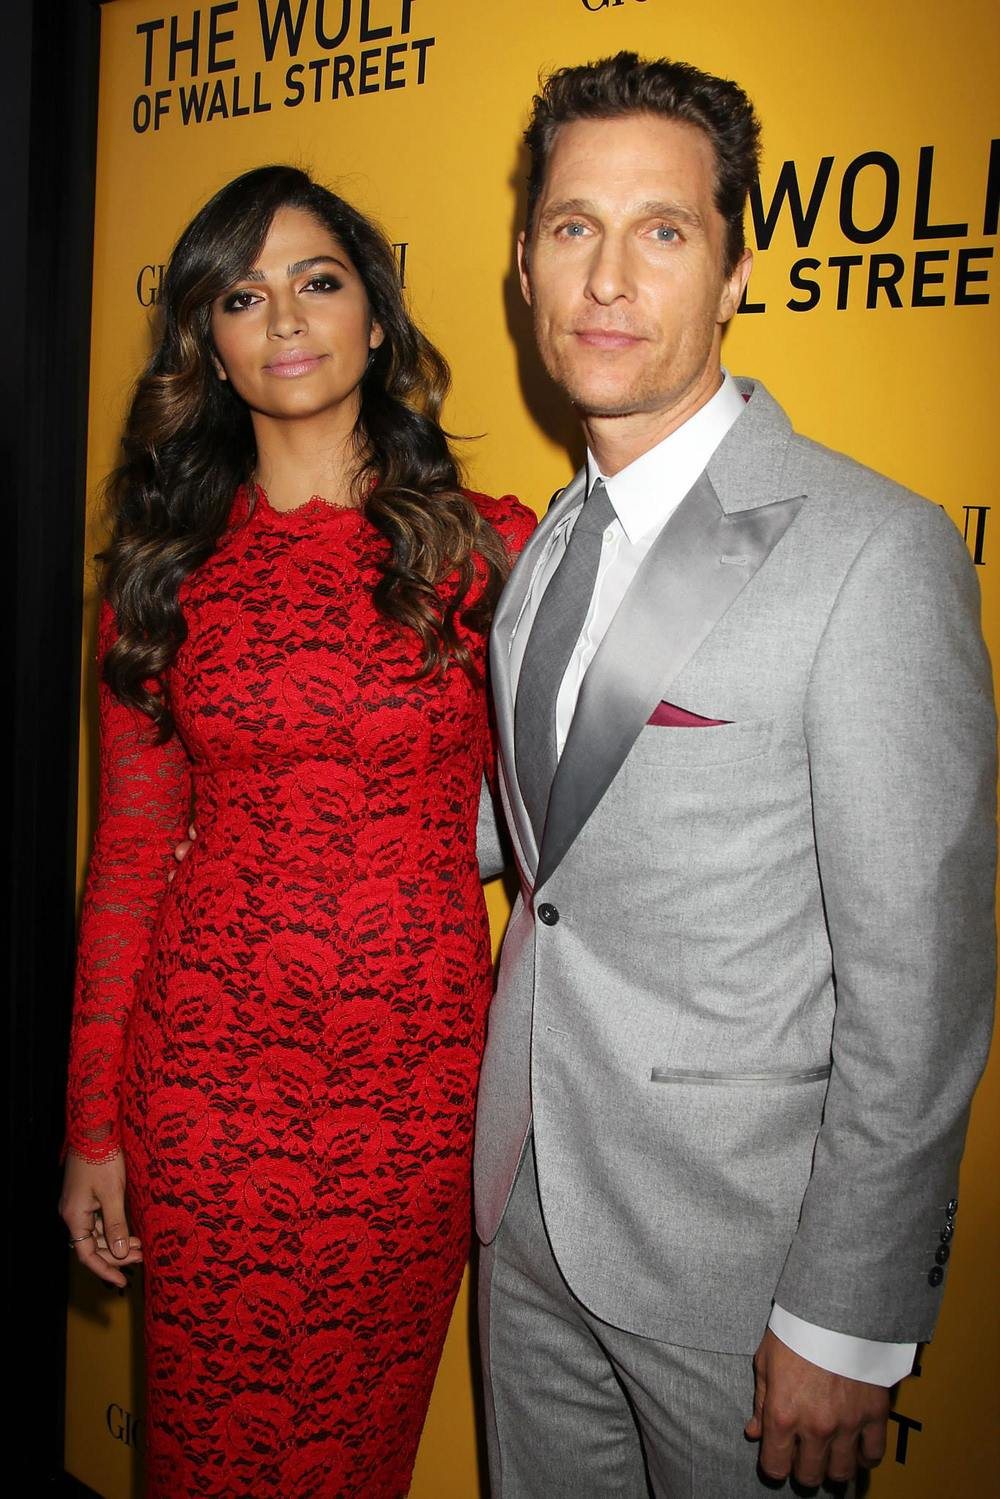 matthew-mcconaughey-and-wife-at-the-wolf-of-wall-street-new-york-premiere-red-granite-pictures-red-granite-international.jpg